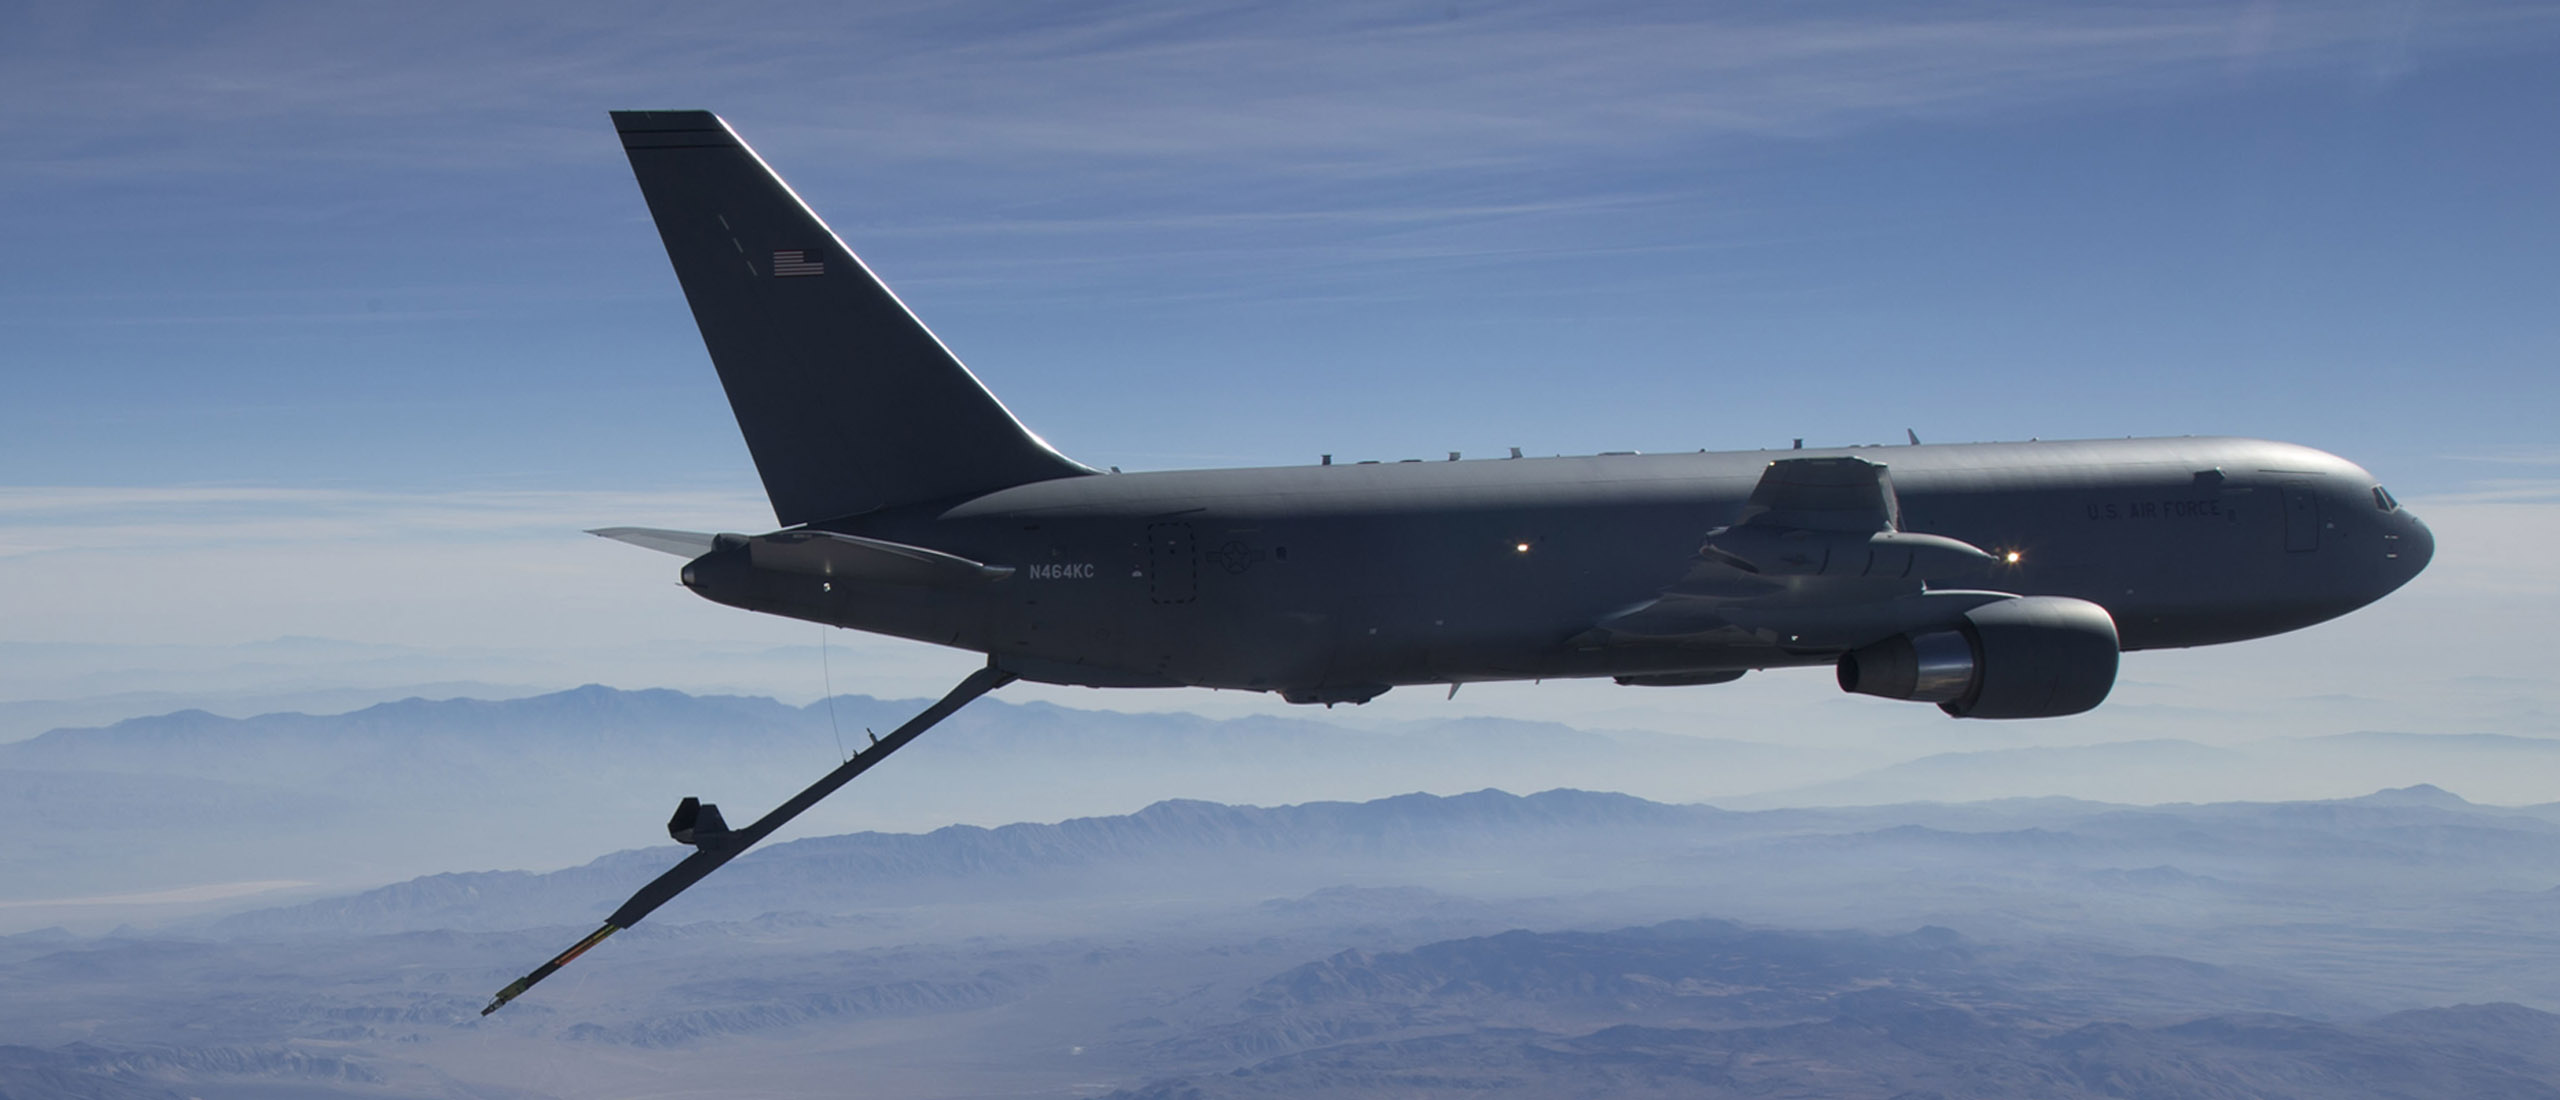 A KC-46A Pegasus aerial refueling aircraft connects with an F-15 Strike Eagle test aircraft from Eglin Air Force Base, Florida, on Oct. 29th, 2018.  The 418th Flight Test Squadron is conducting refueling tests with the fighter at Edwards Air Force Base, California.  Although Edwards has almost every aircraft in the Air Force's inventory for flight testing and system upgrades, the base does not have F-15s, so the 40th Flight Test Squadron from Eglin is assisting with the KC-46A refueling tests.  The KC-46A Pegasus is intended to start replacing the Air Force's aging tanker fleet, which has been refueling aircraft for more than 50 years.  With more refueling capacity and enhanced capabilities, improved efficiency and increased capabilities for cargo and aeromedical evacuation, the KC-46A will provide aerial refueling support to the Air Force, Navy, Marine Corps, and allied nation aircraft. (U.S. Air Force photo by Master Sgt Michael Jackson).